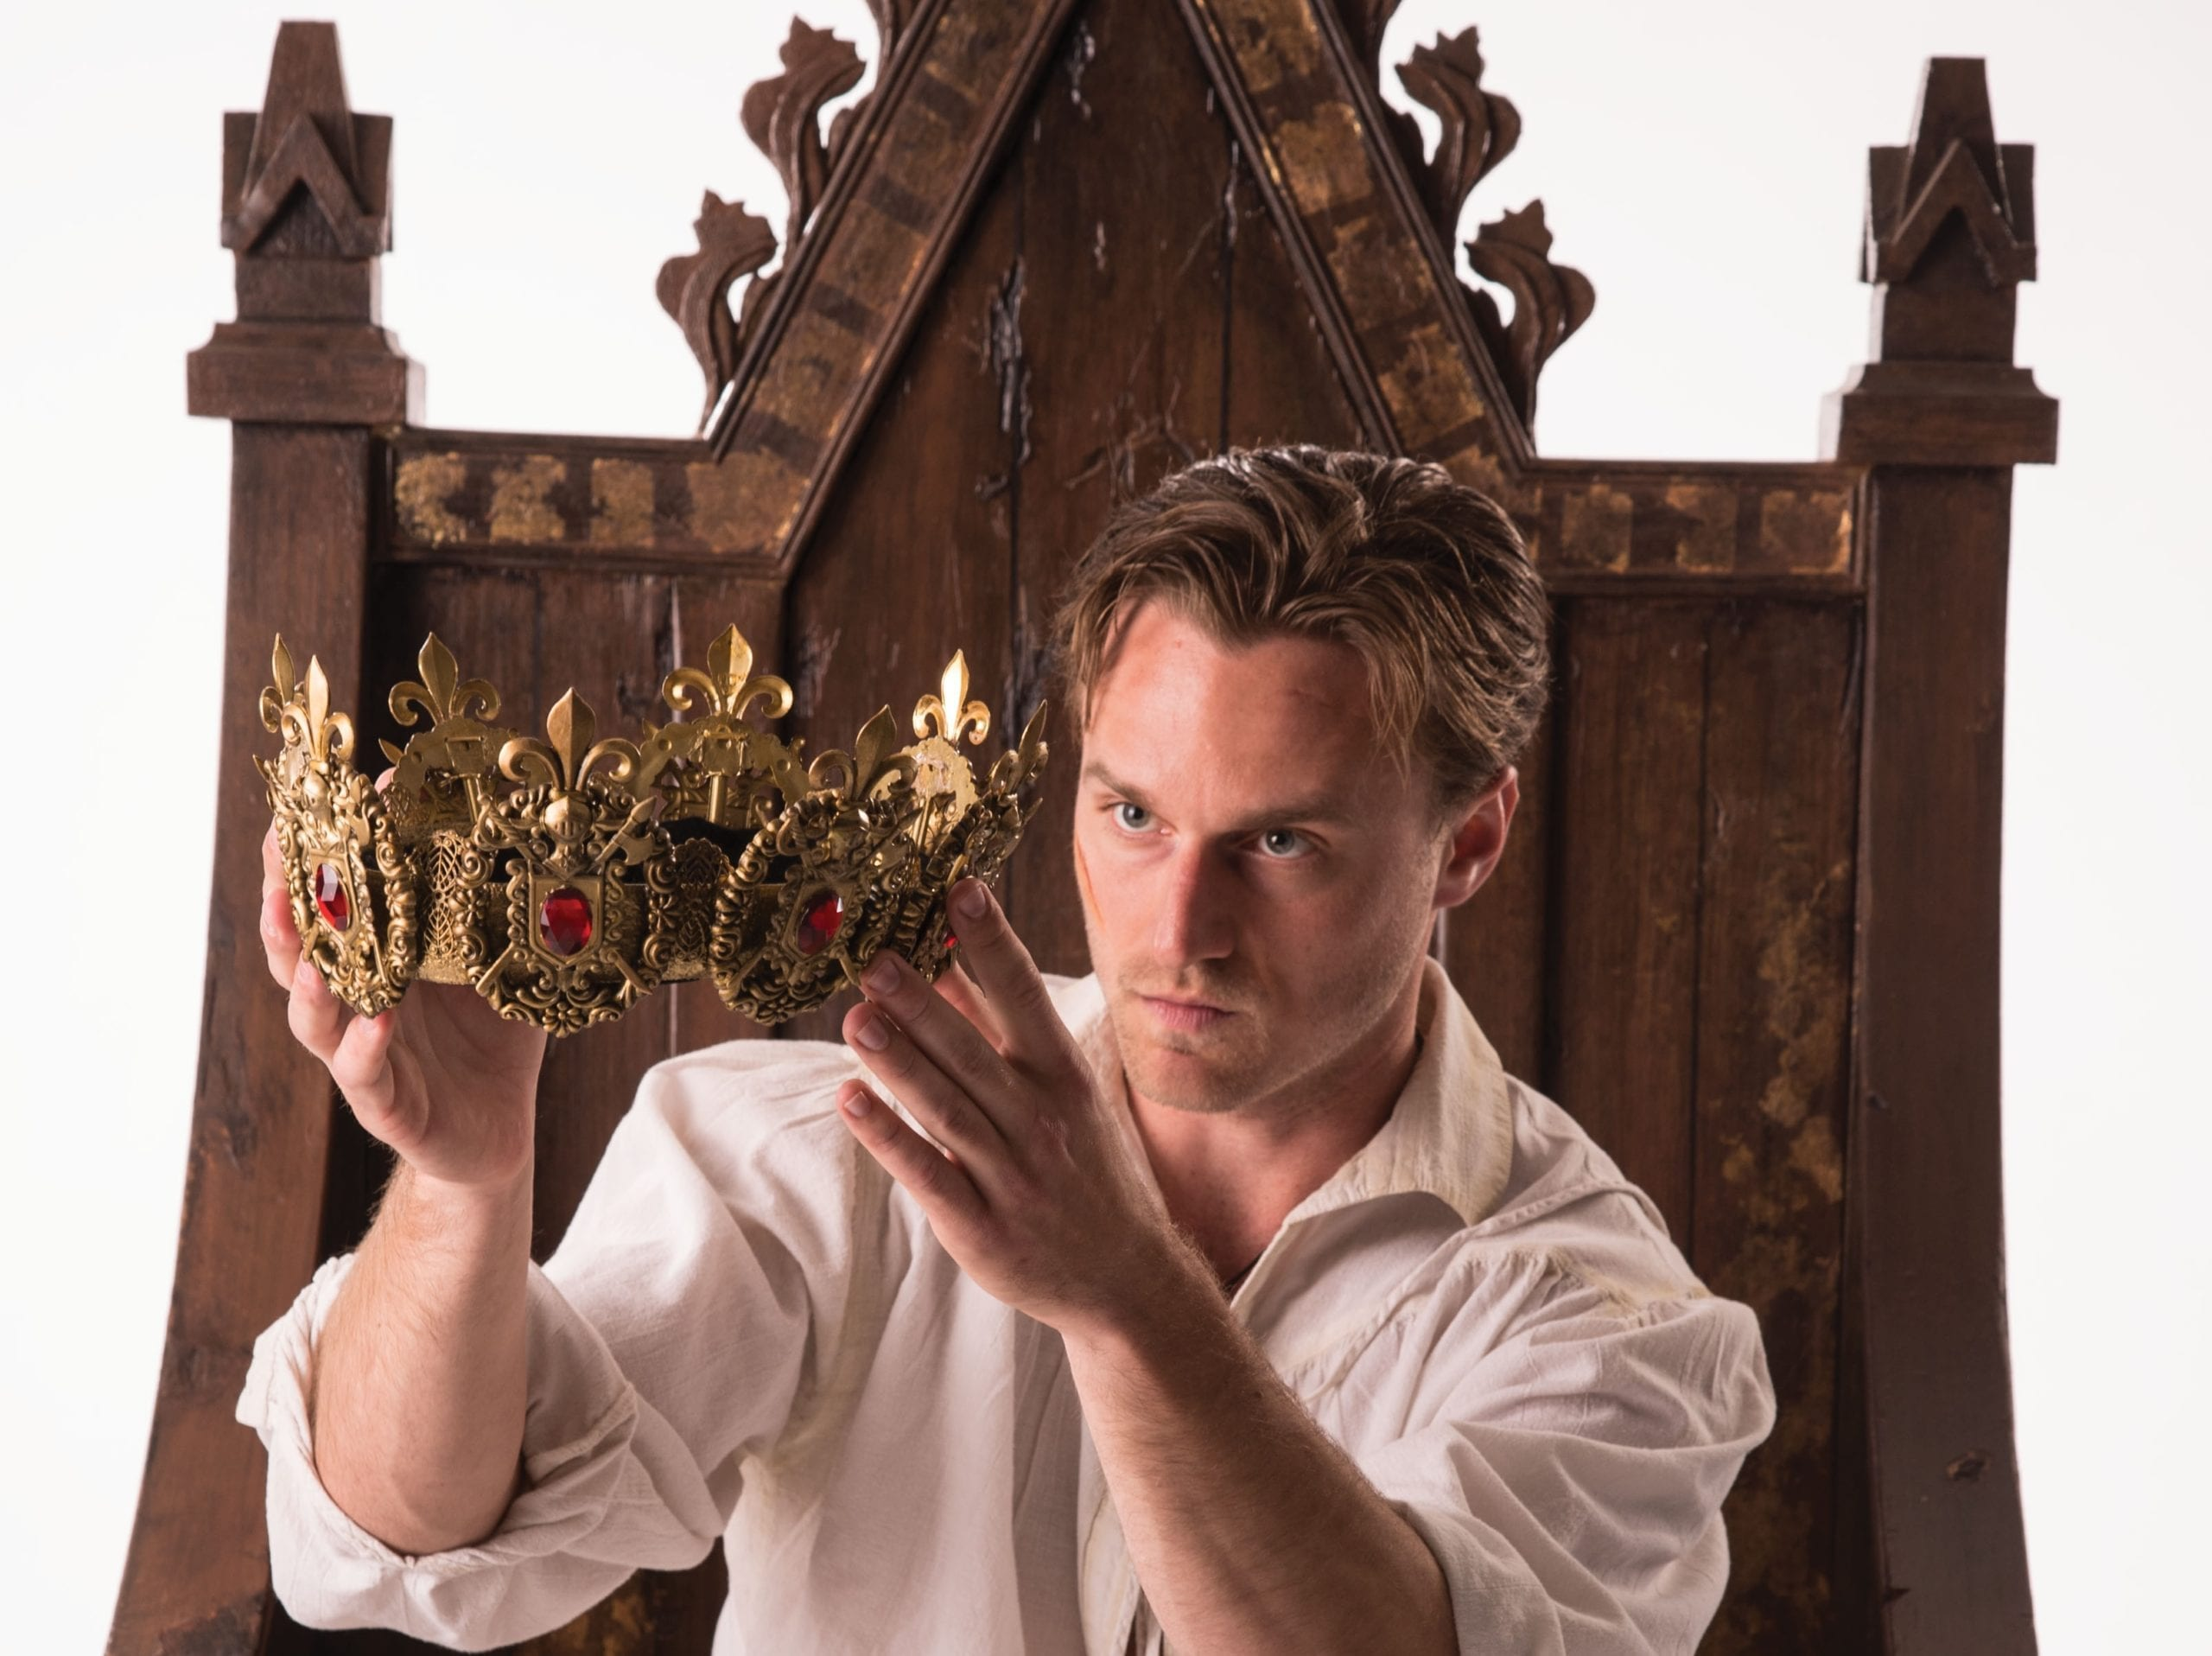 Interview with actors playing Henry IV and Henry V in the HENRIAD series